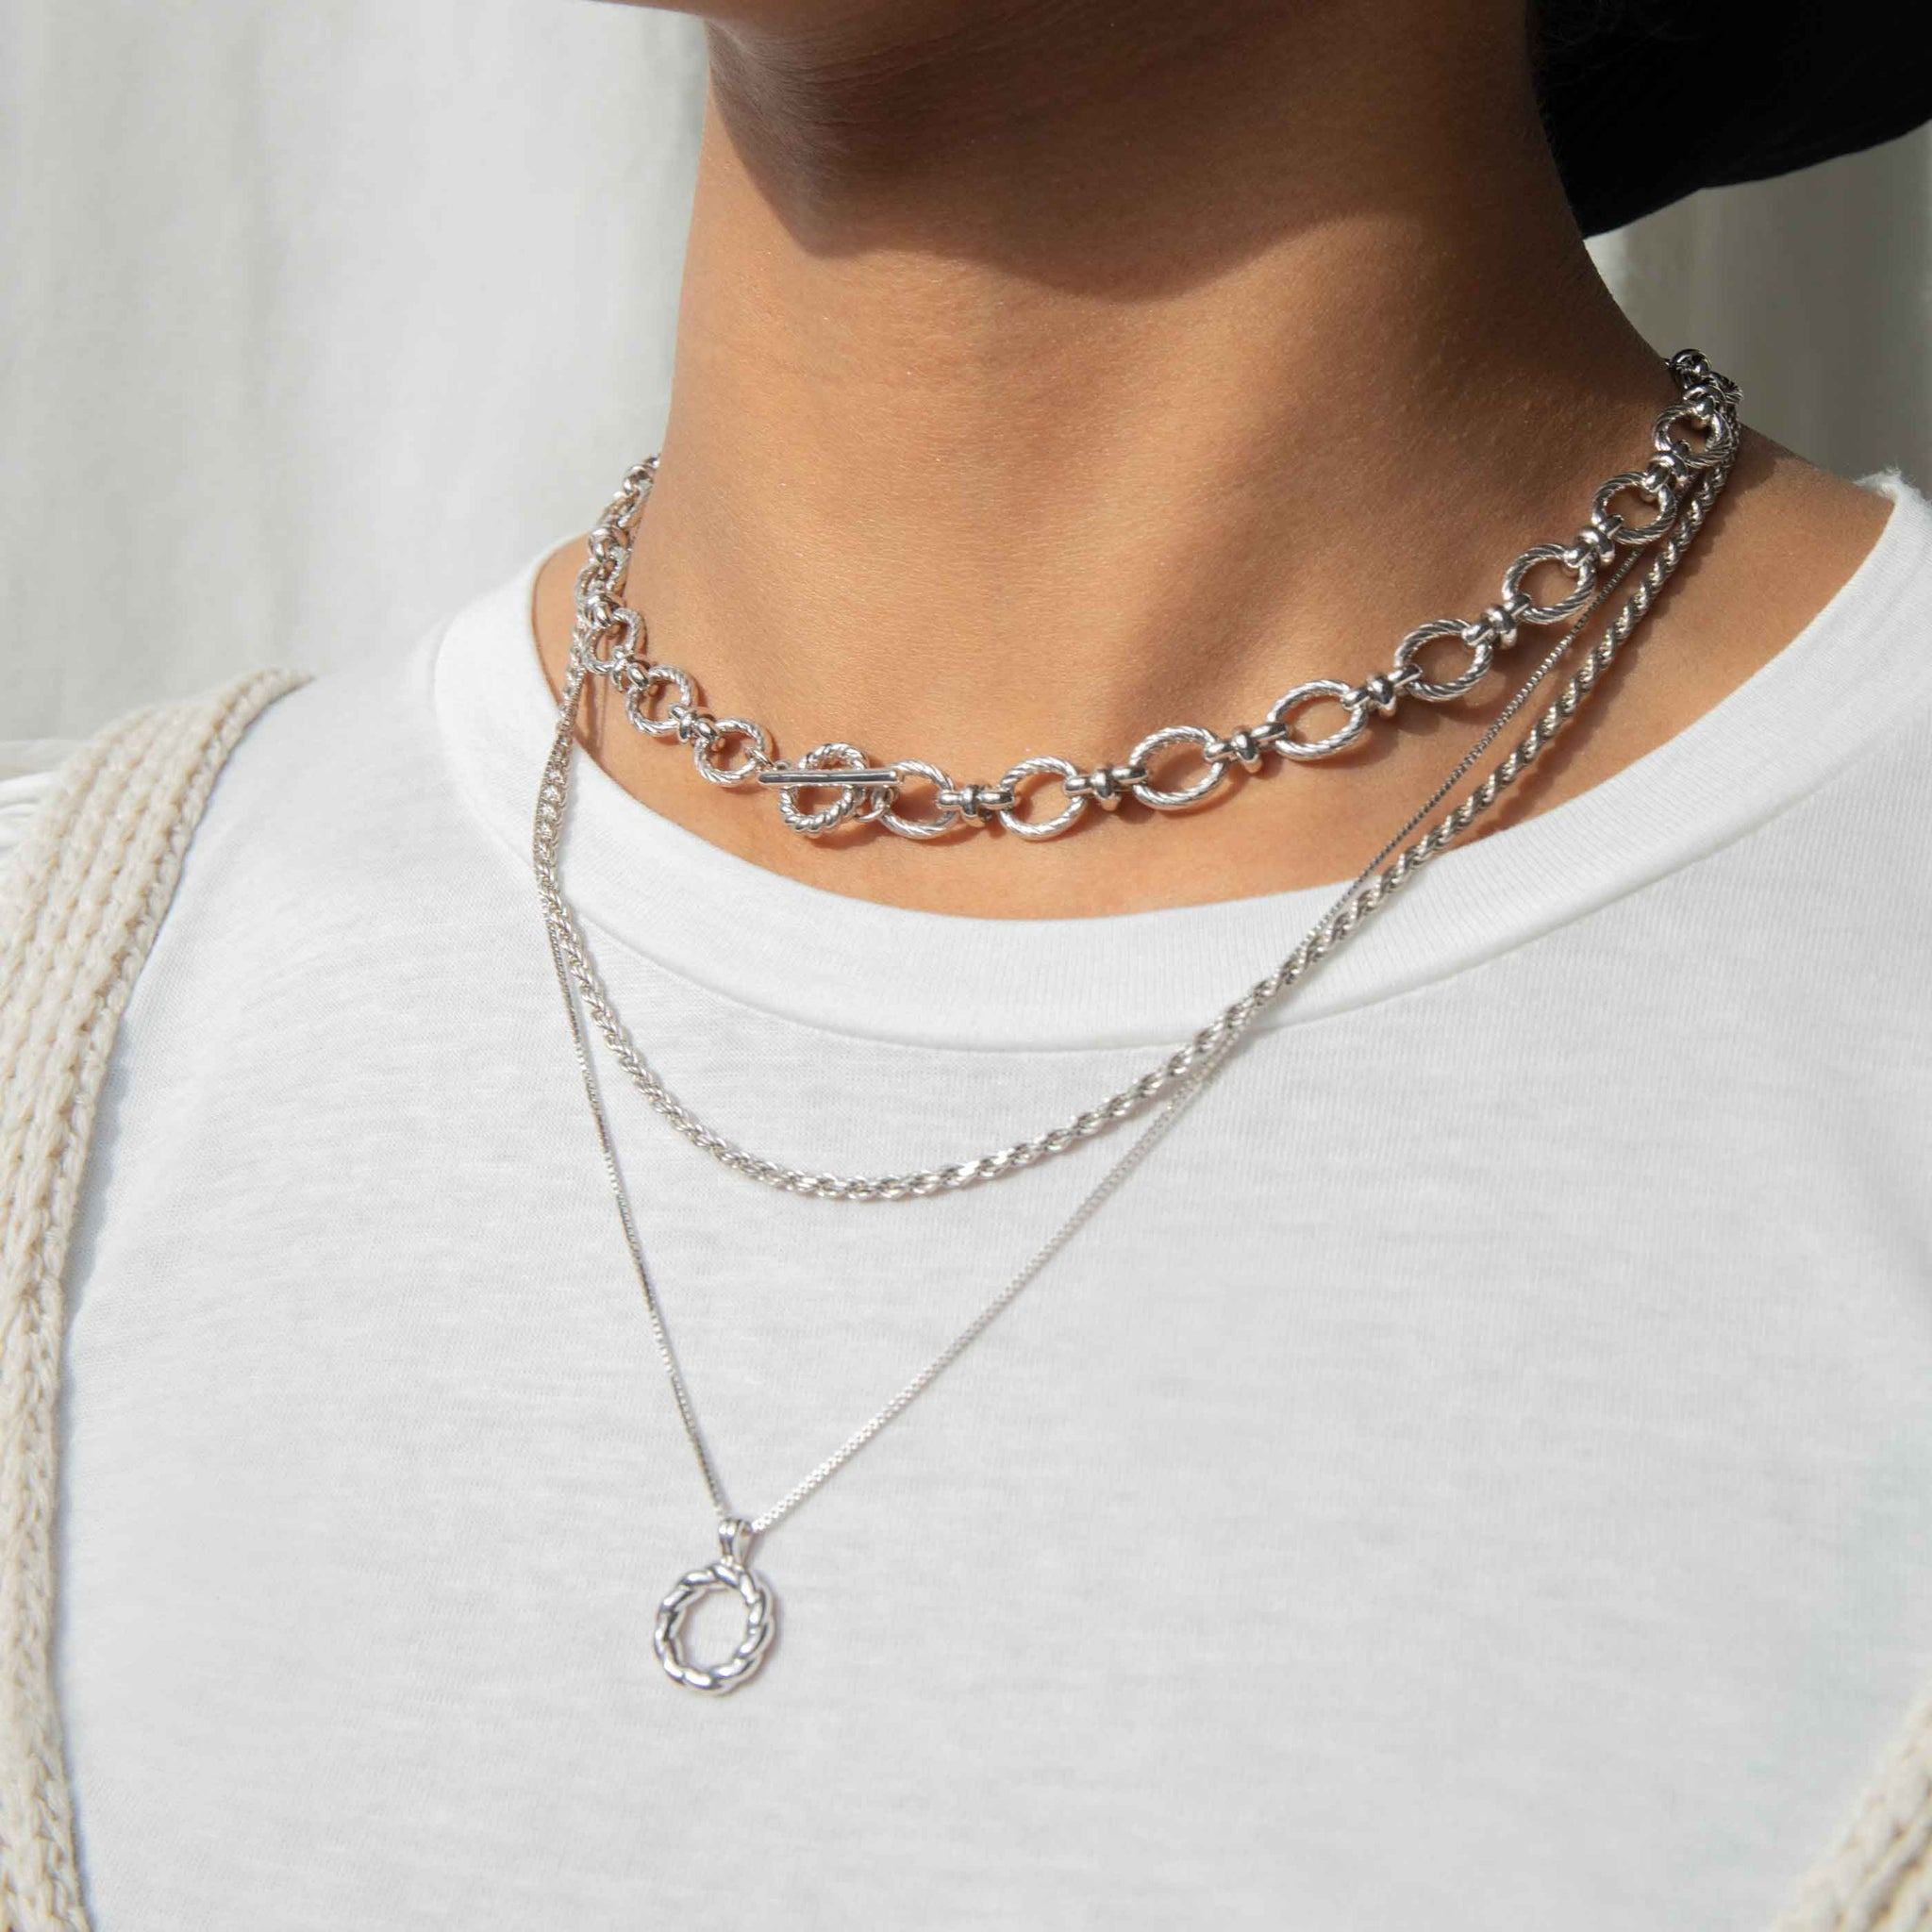 Textured Oval Link T-Bar Necklace in Silver worn with pendant necklace